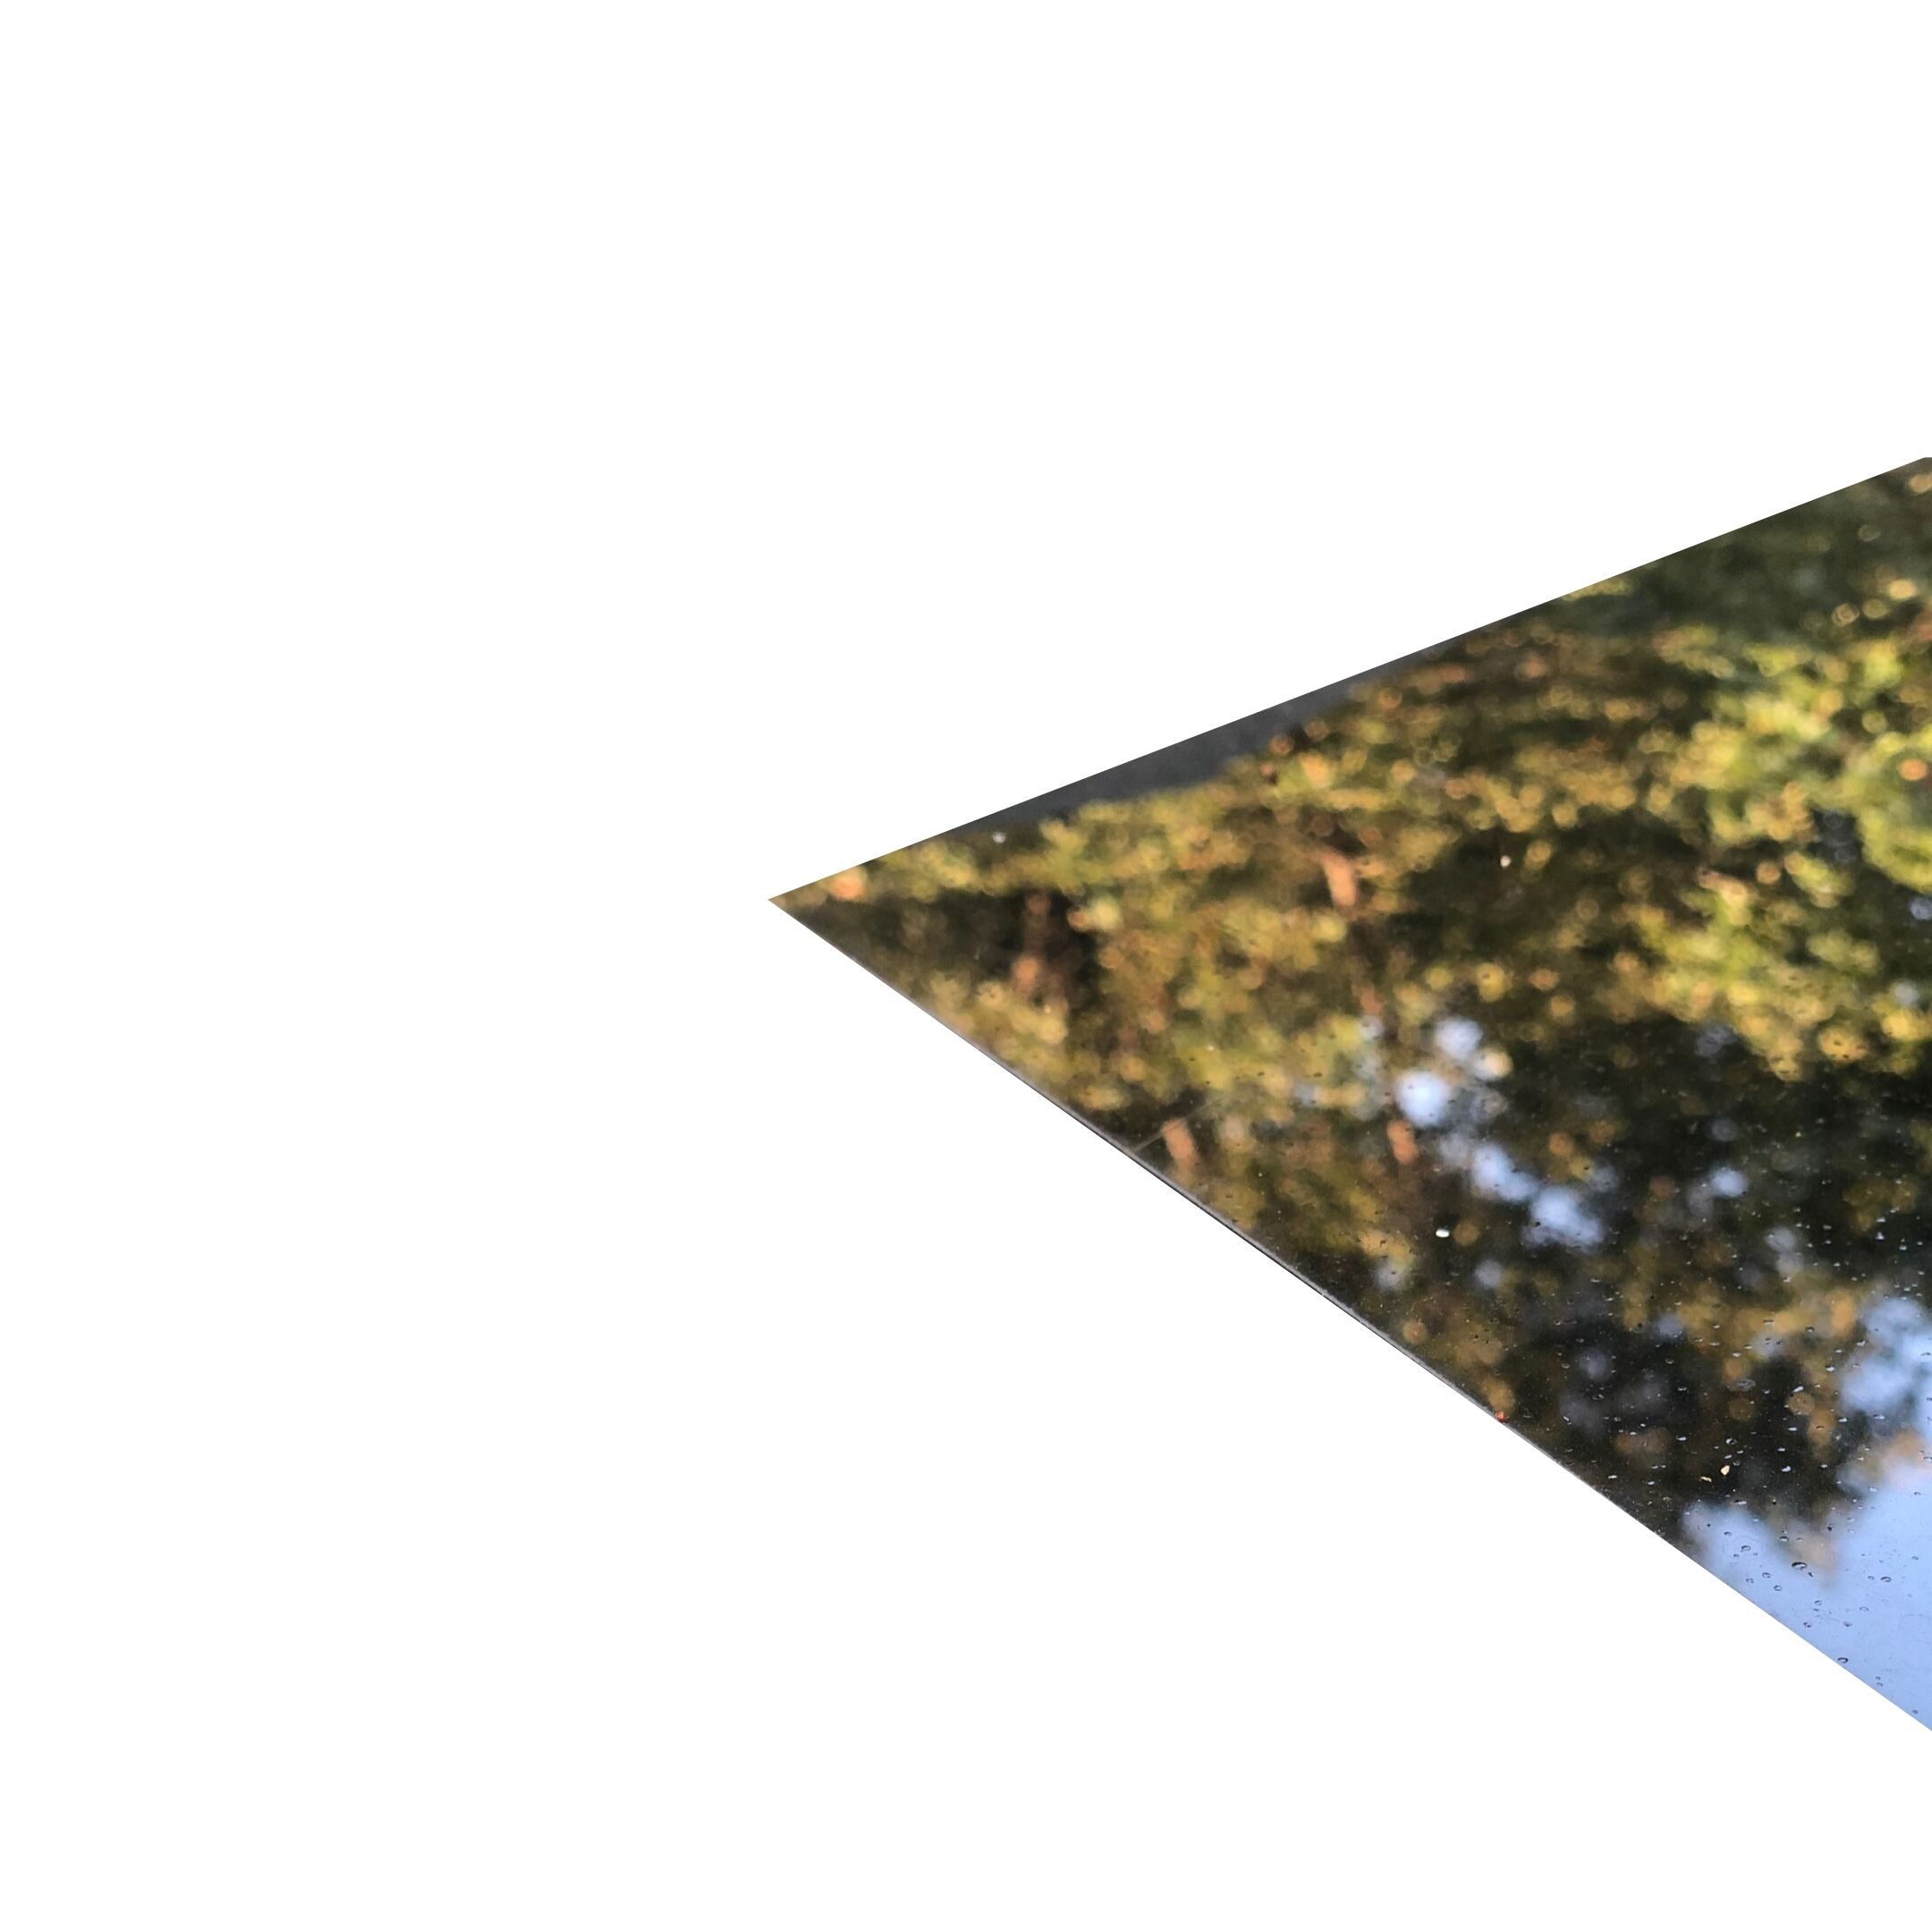 trees reflected in a sunroof